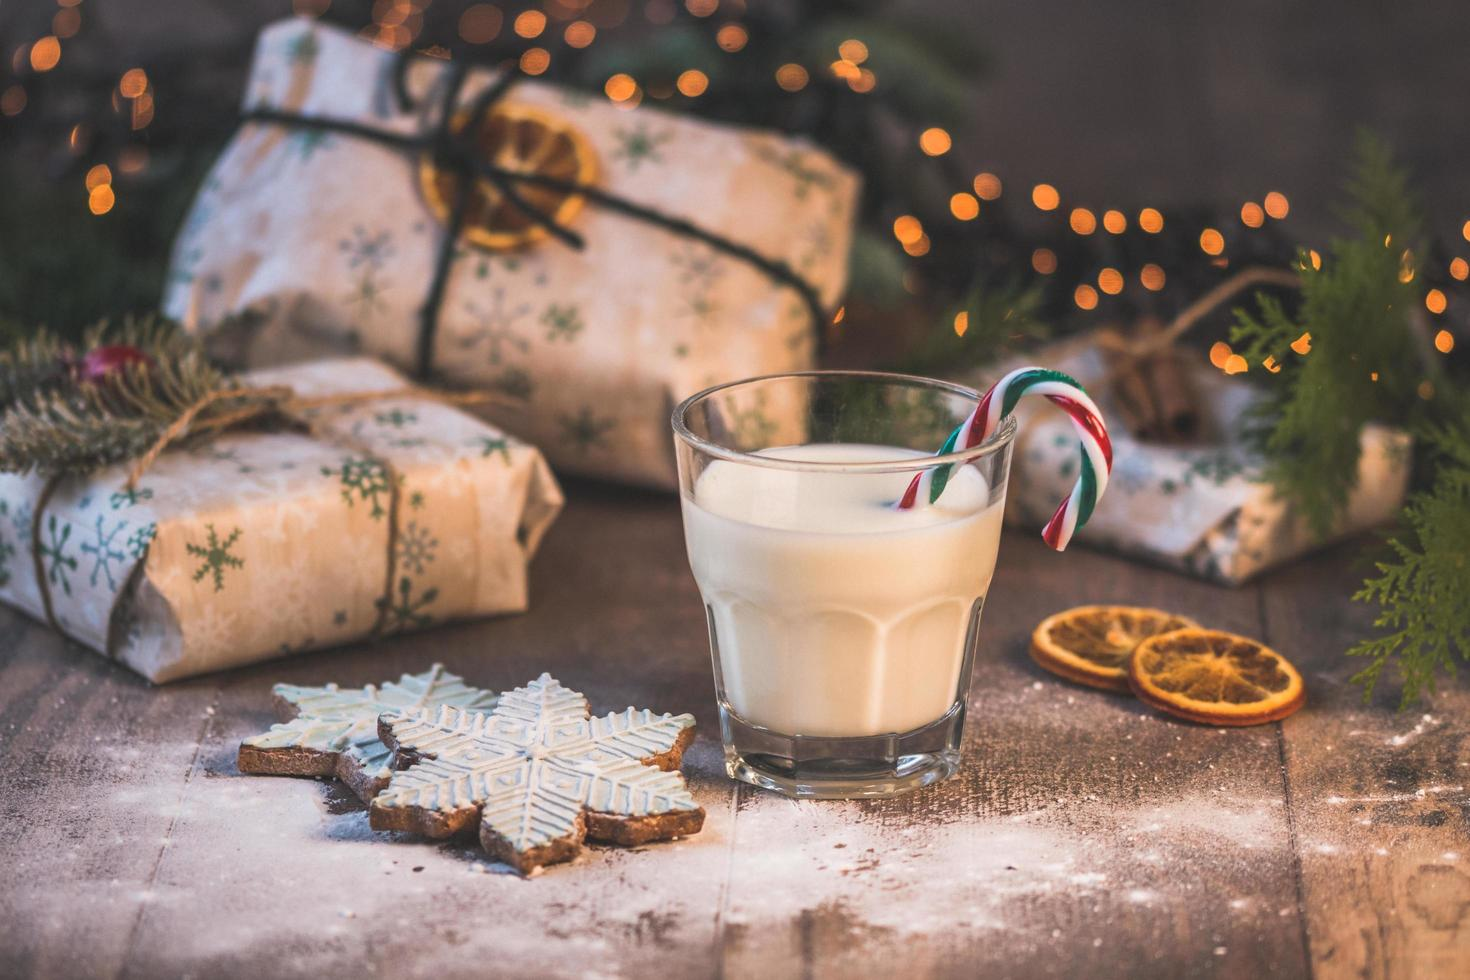 Winter holiday cookies and milk photo